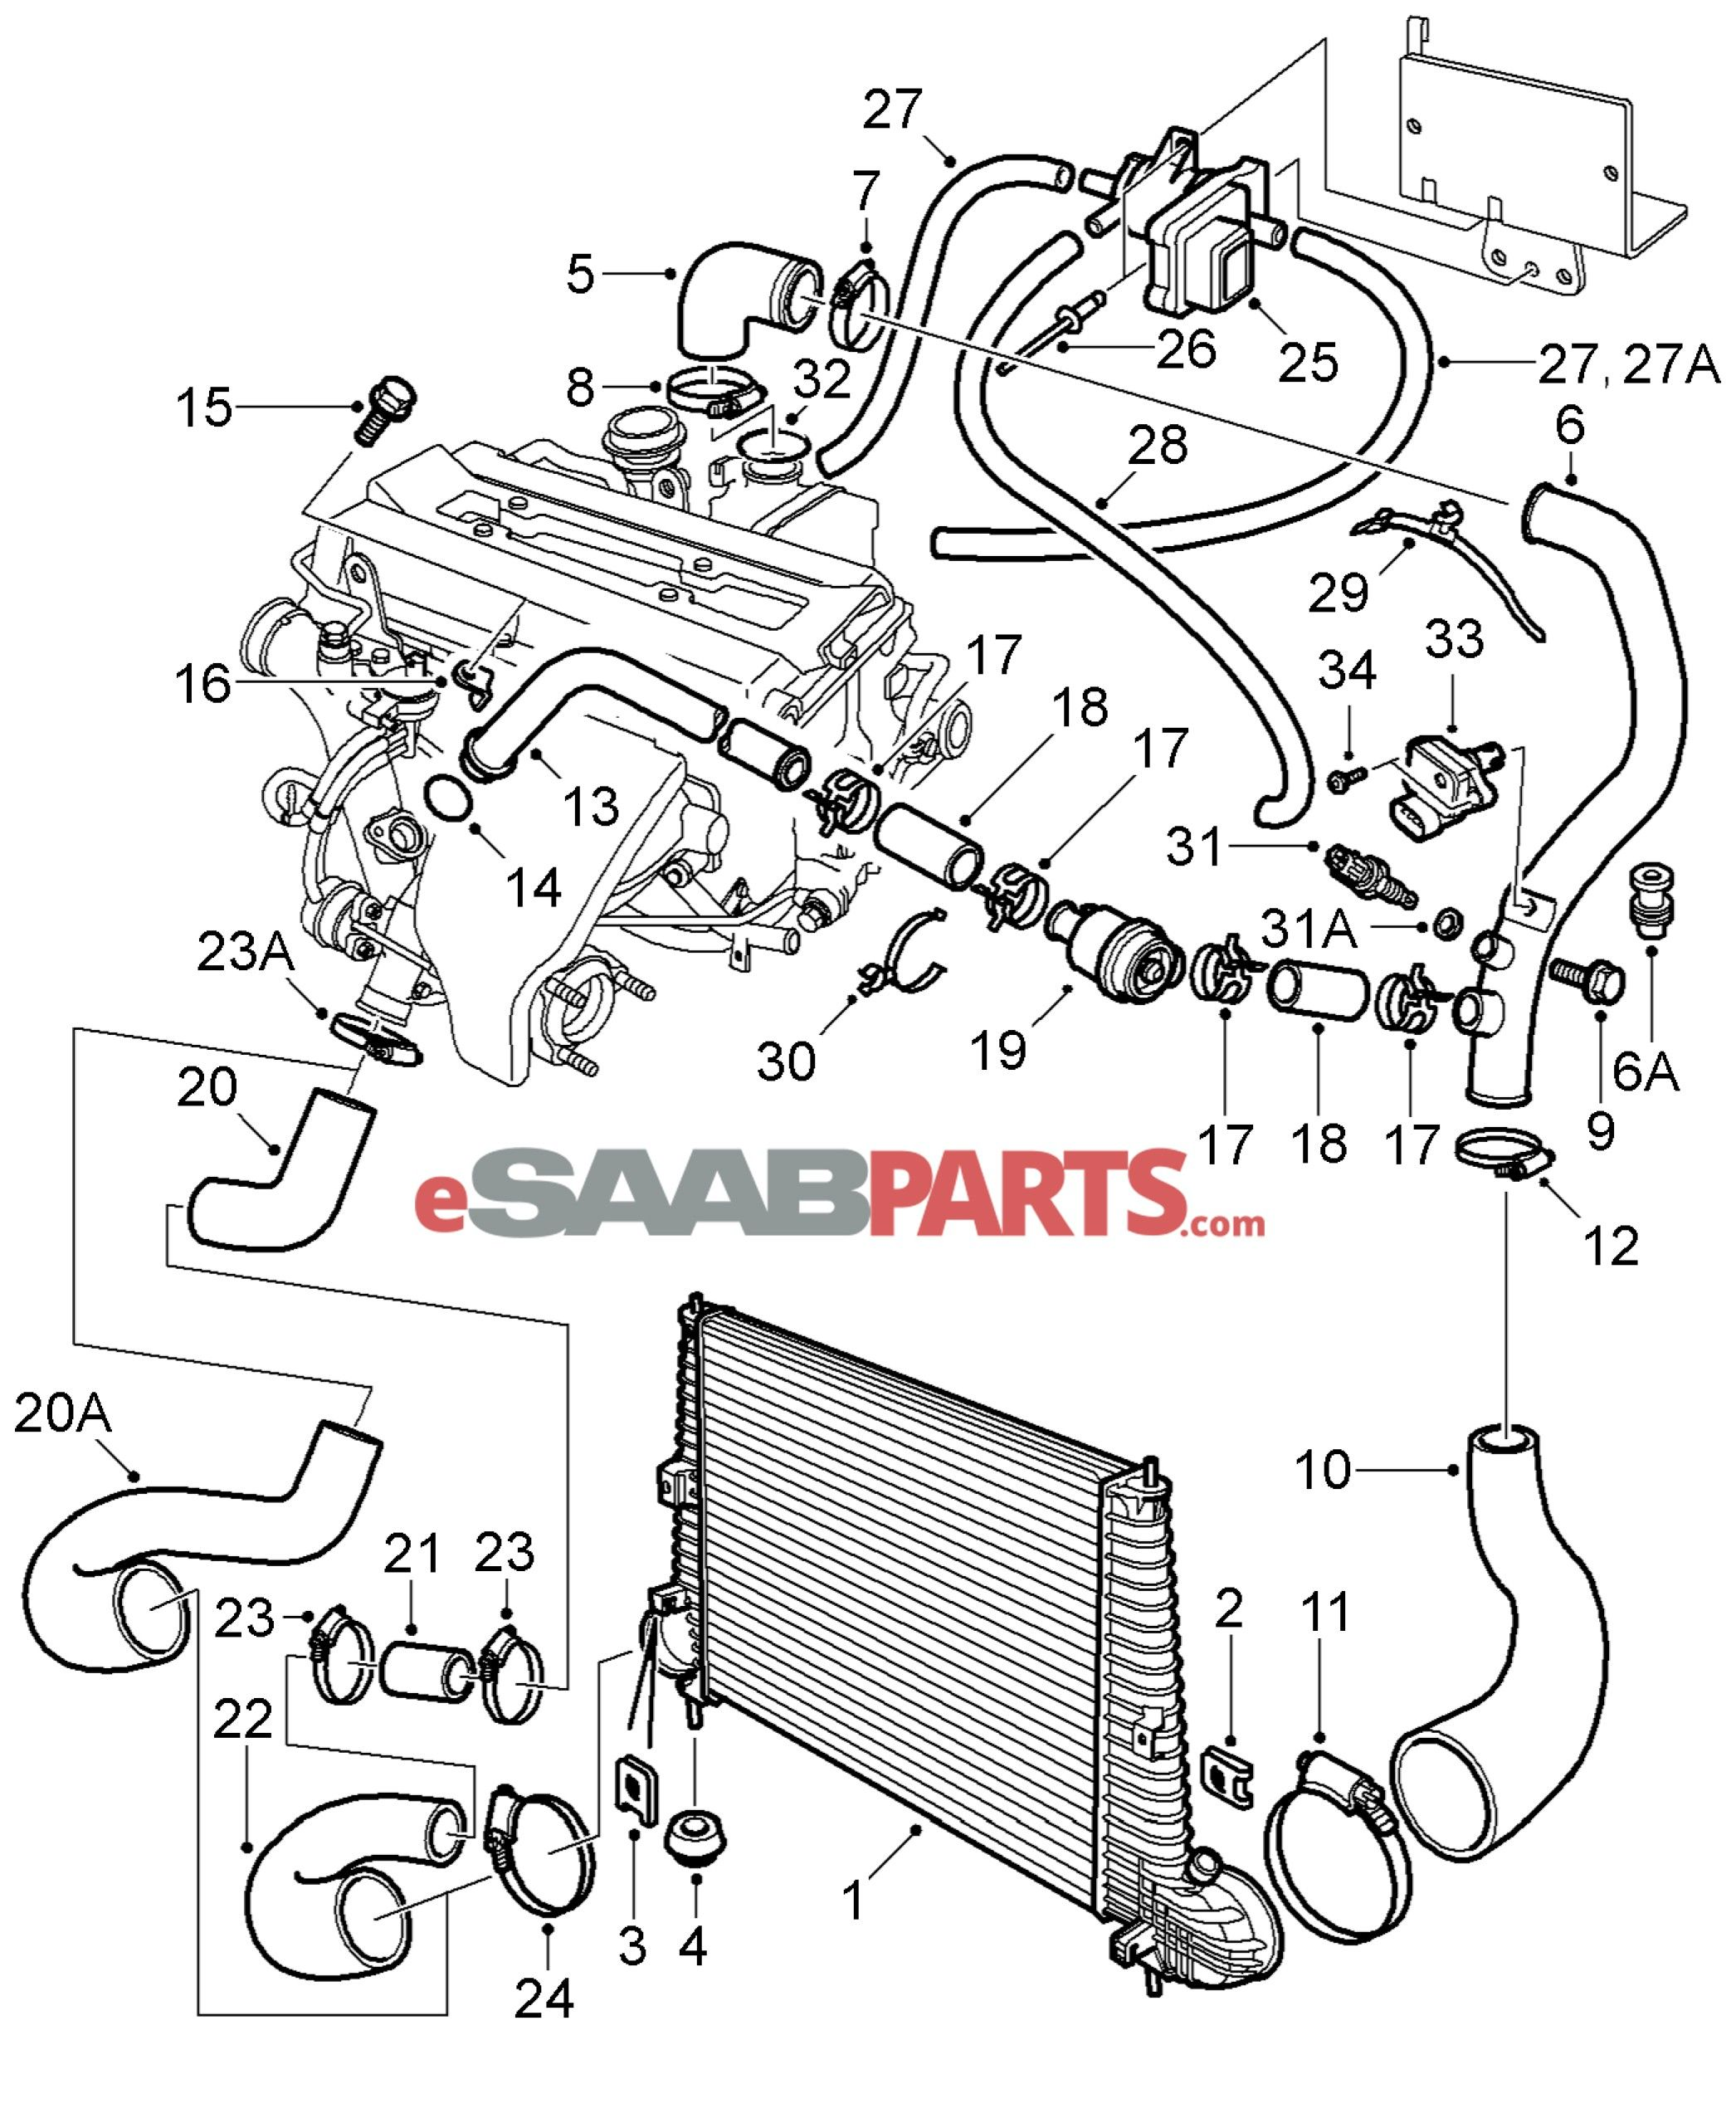 Saab 9 5 Engine Part Diagram Basic Guide Wiring Diagram U Rh Hydrasystemsllc Com 99